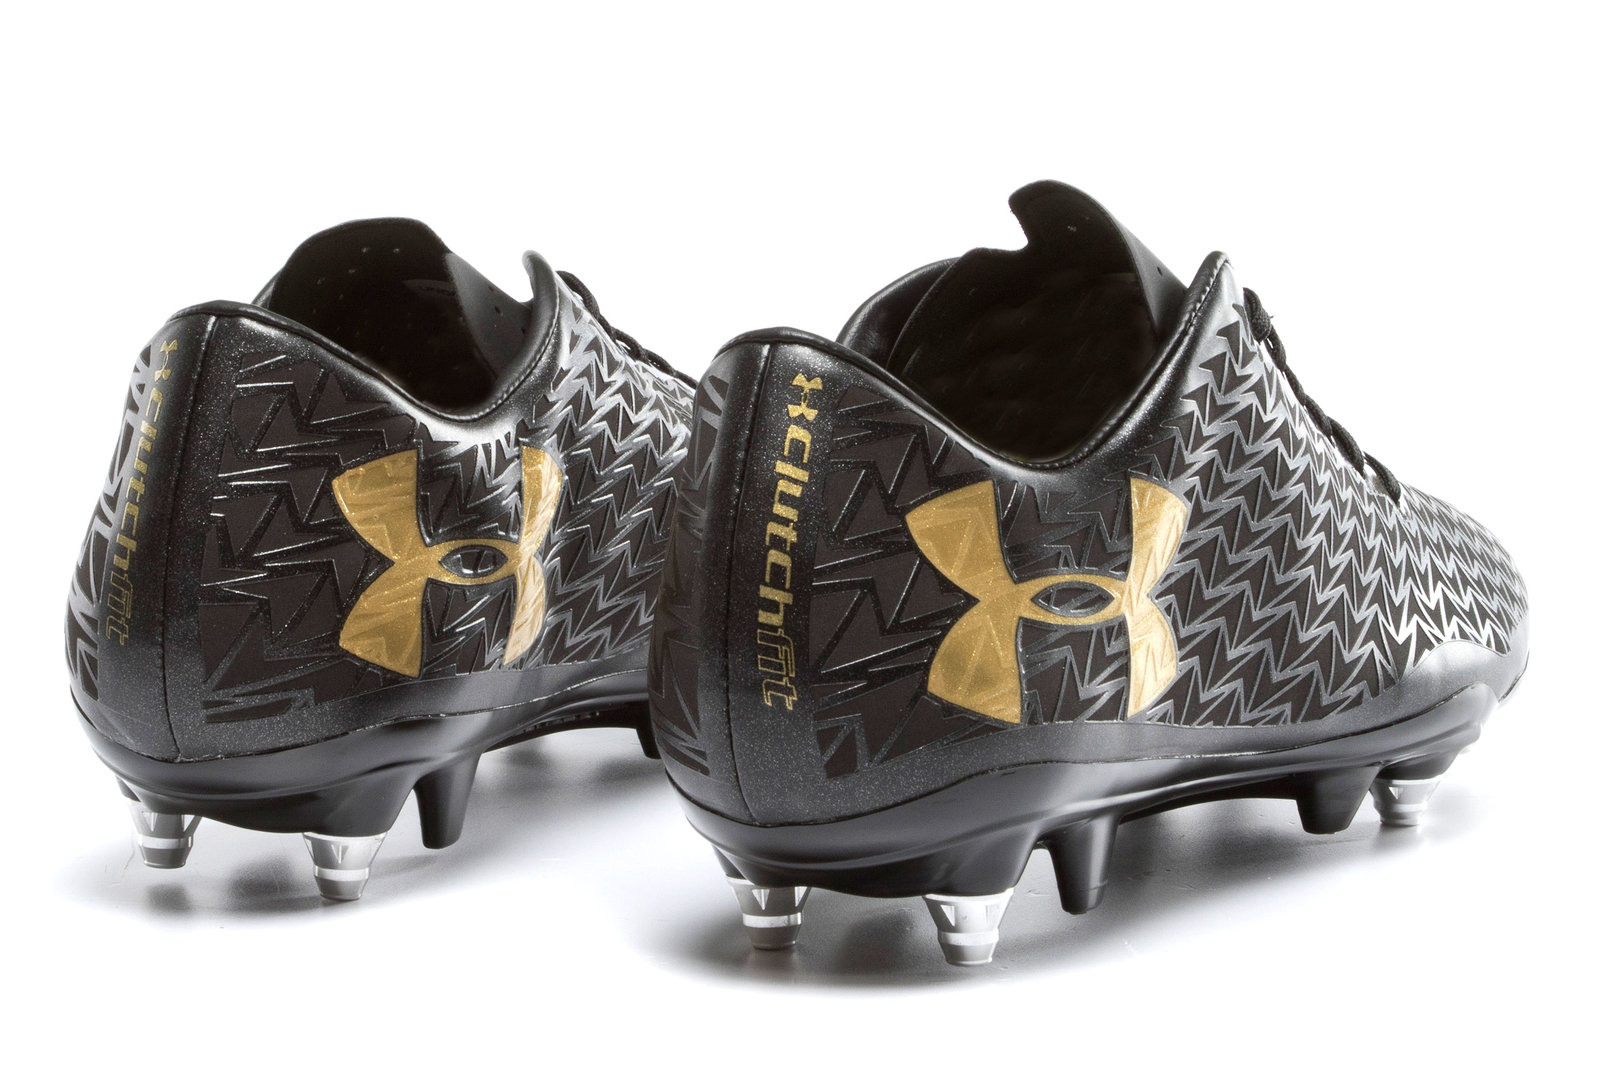 a587b274f5e6 Under Armour Mens Corespeed Hybrid SG Rugby Boots Shoes Footwear Sports  Training